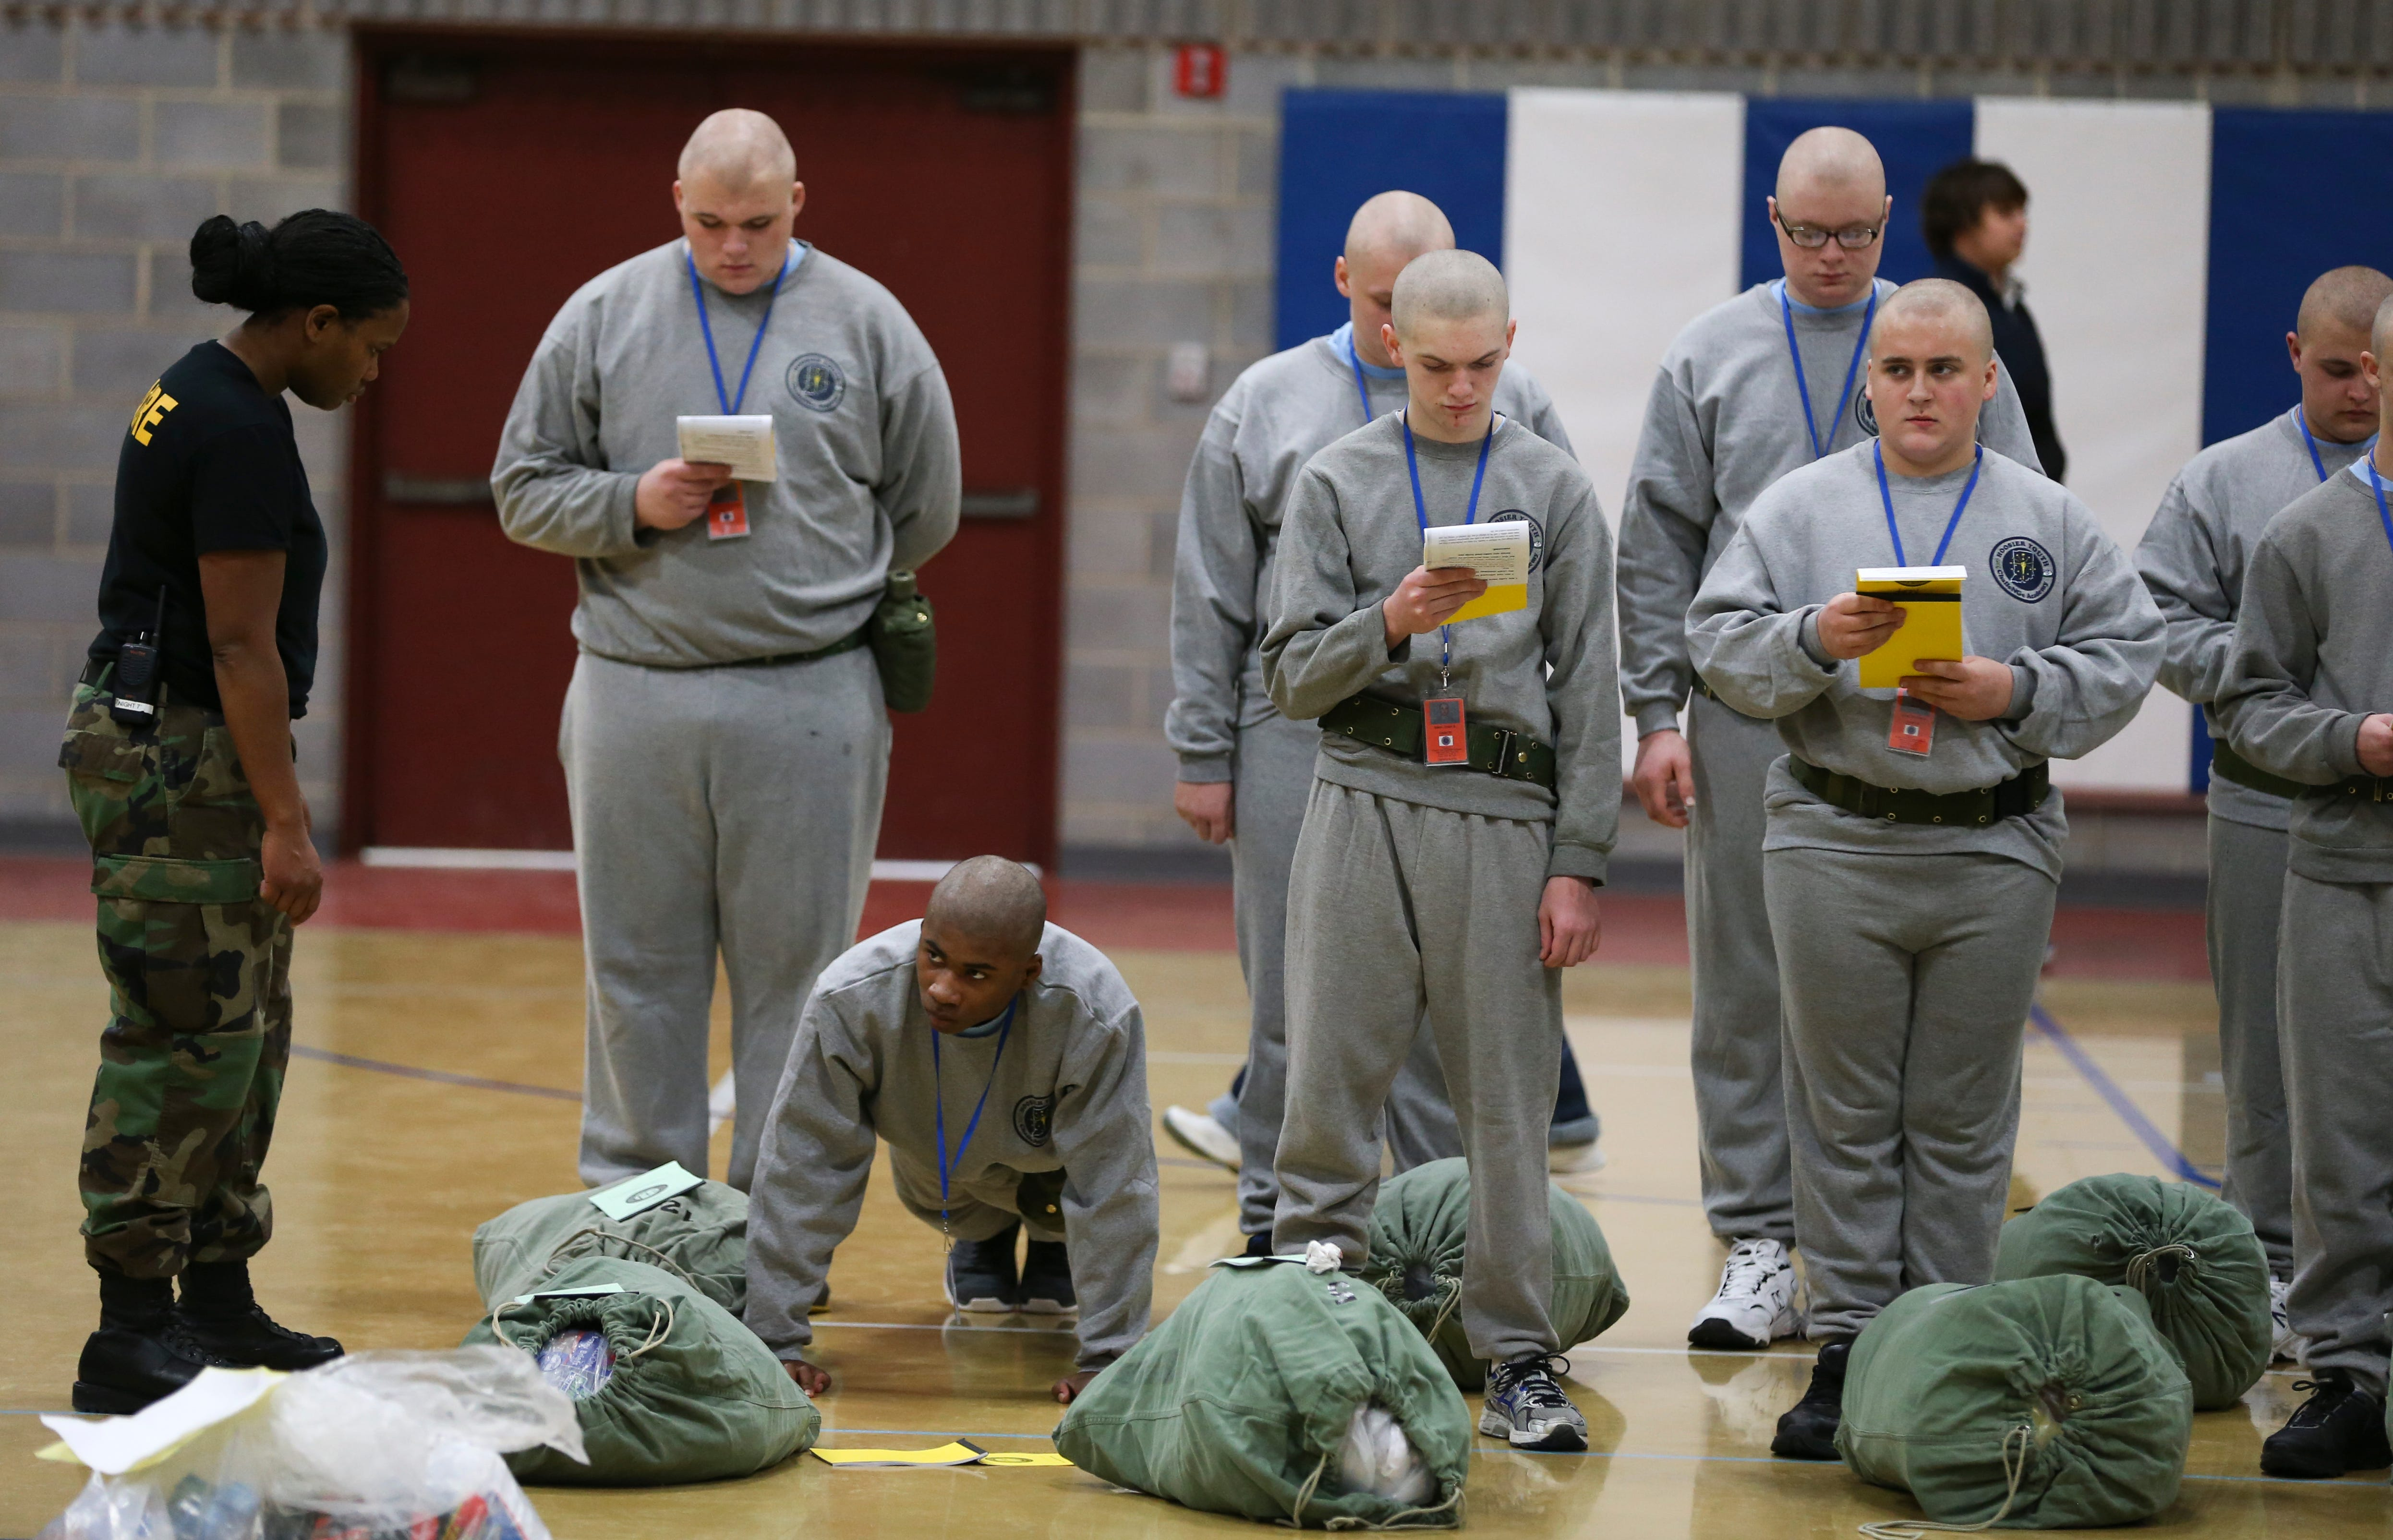 Boot camps missouri teens for troubled